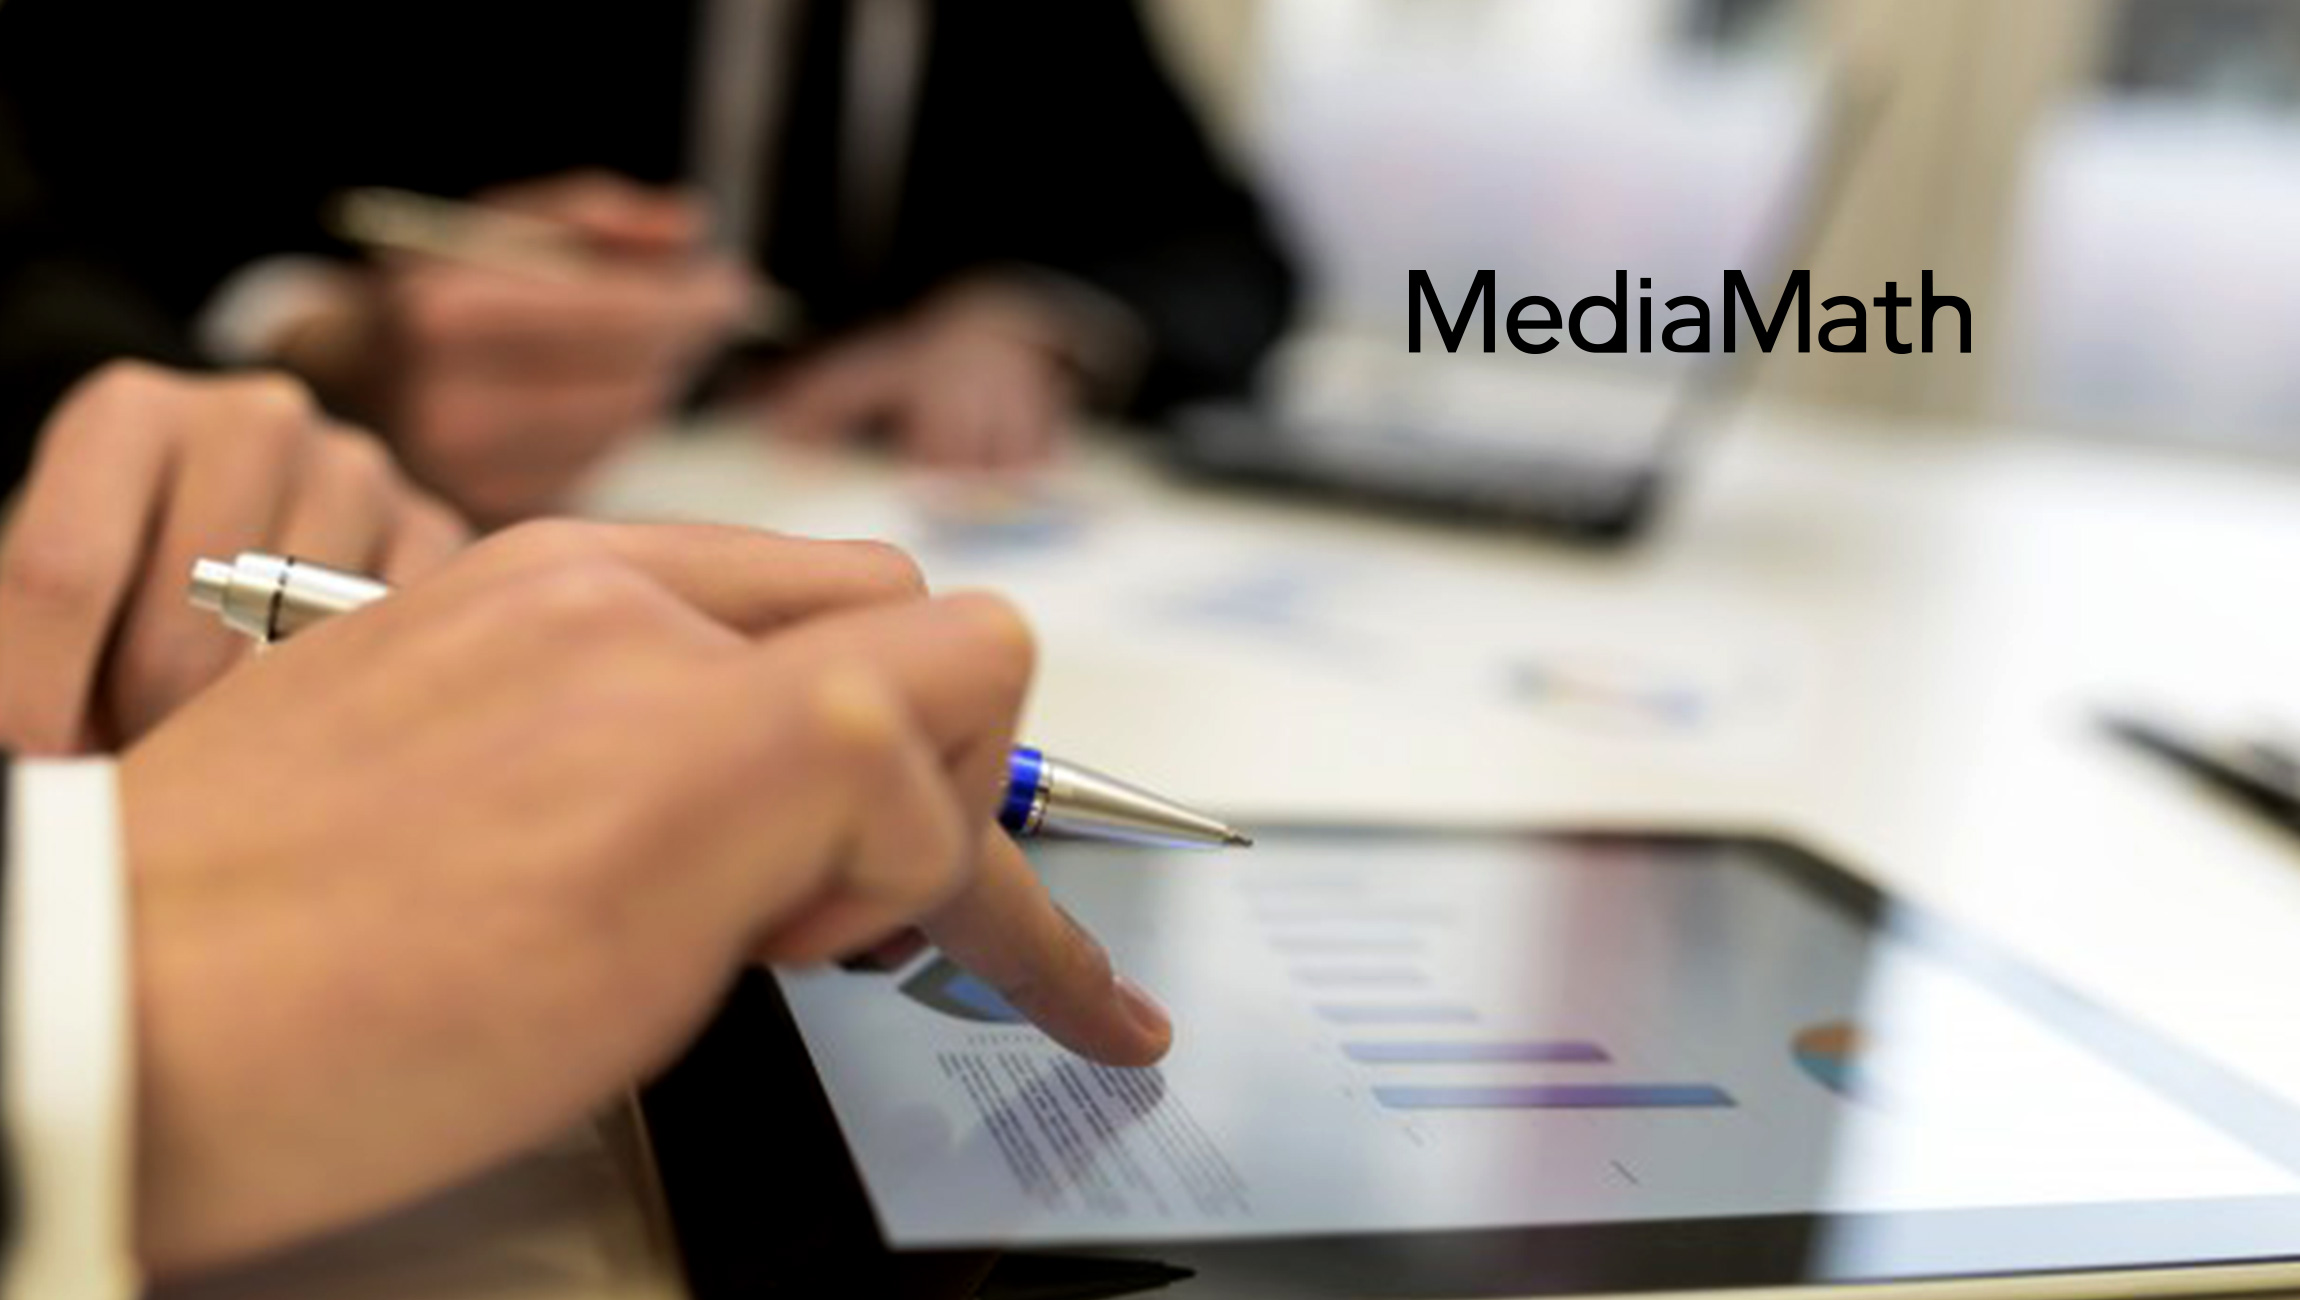 MediaMath Commits To 100 Percent Accountable & Addressable Digital Media Supply Chain By End Of 2020